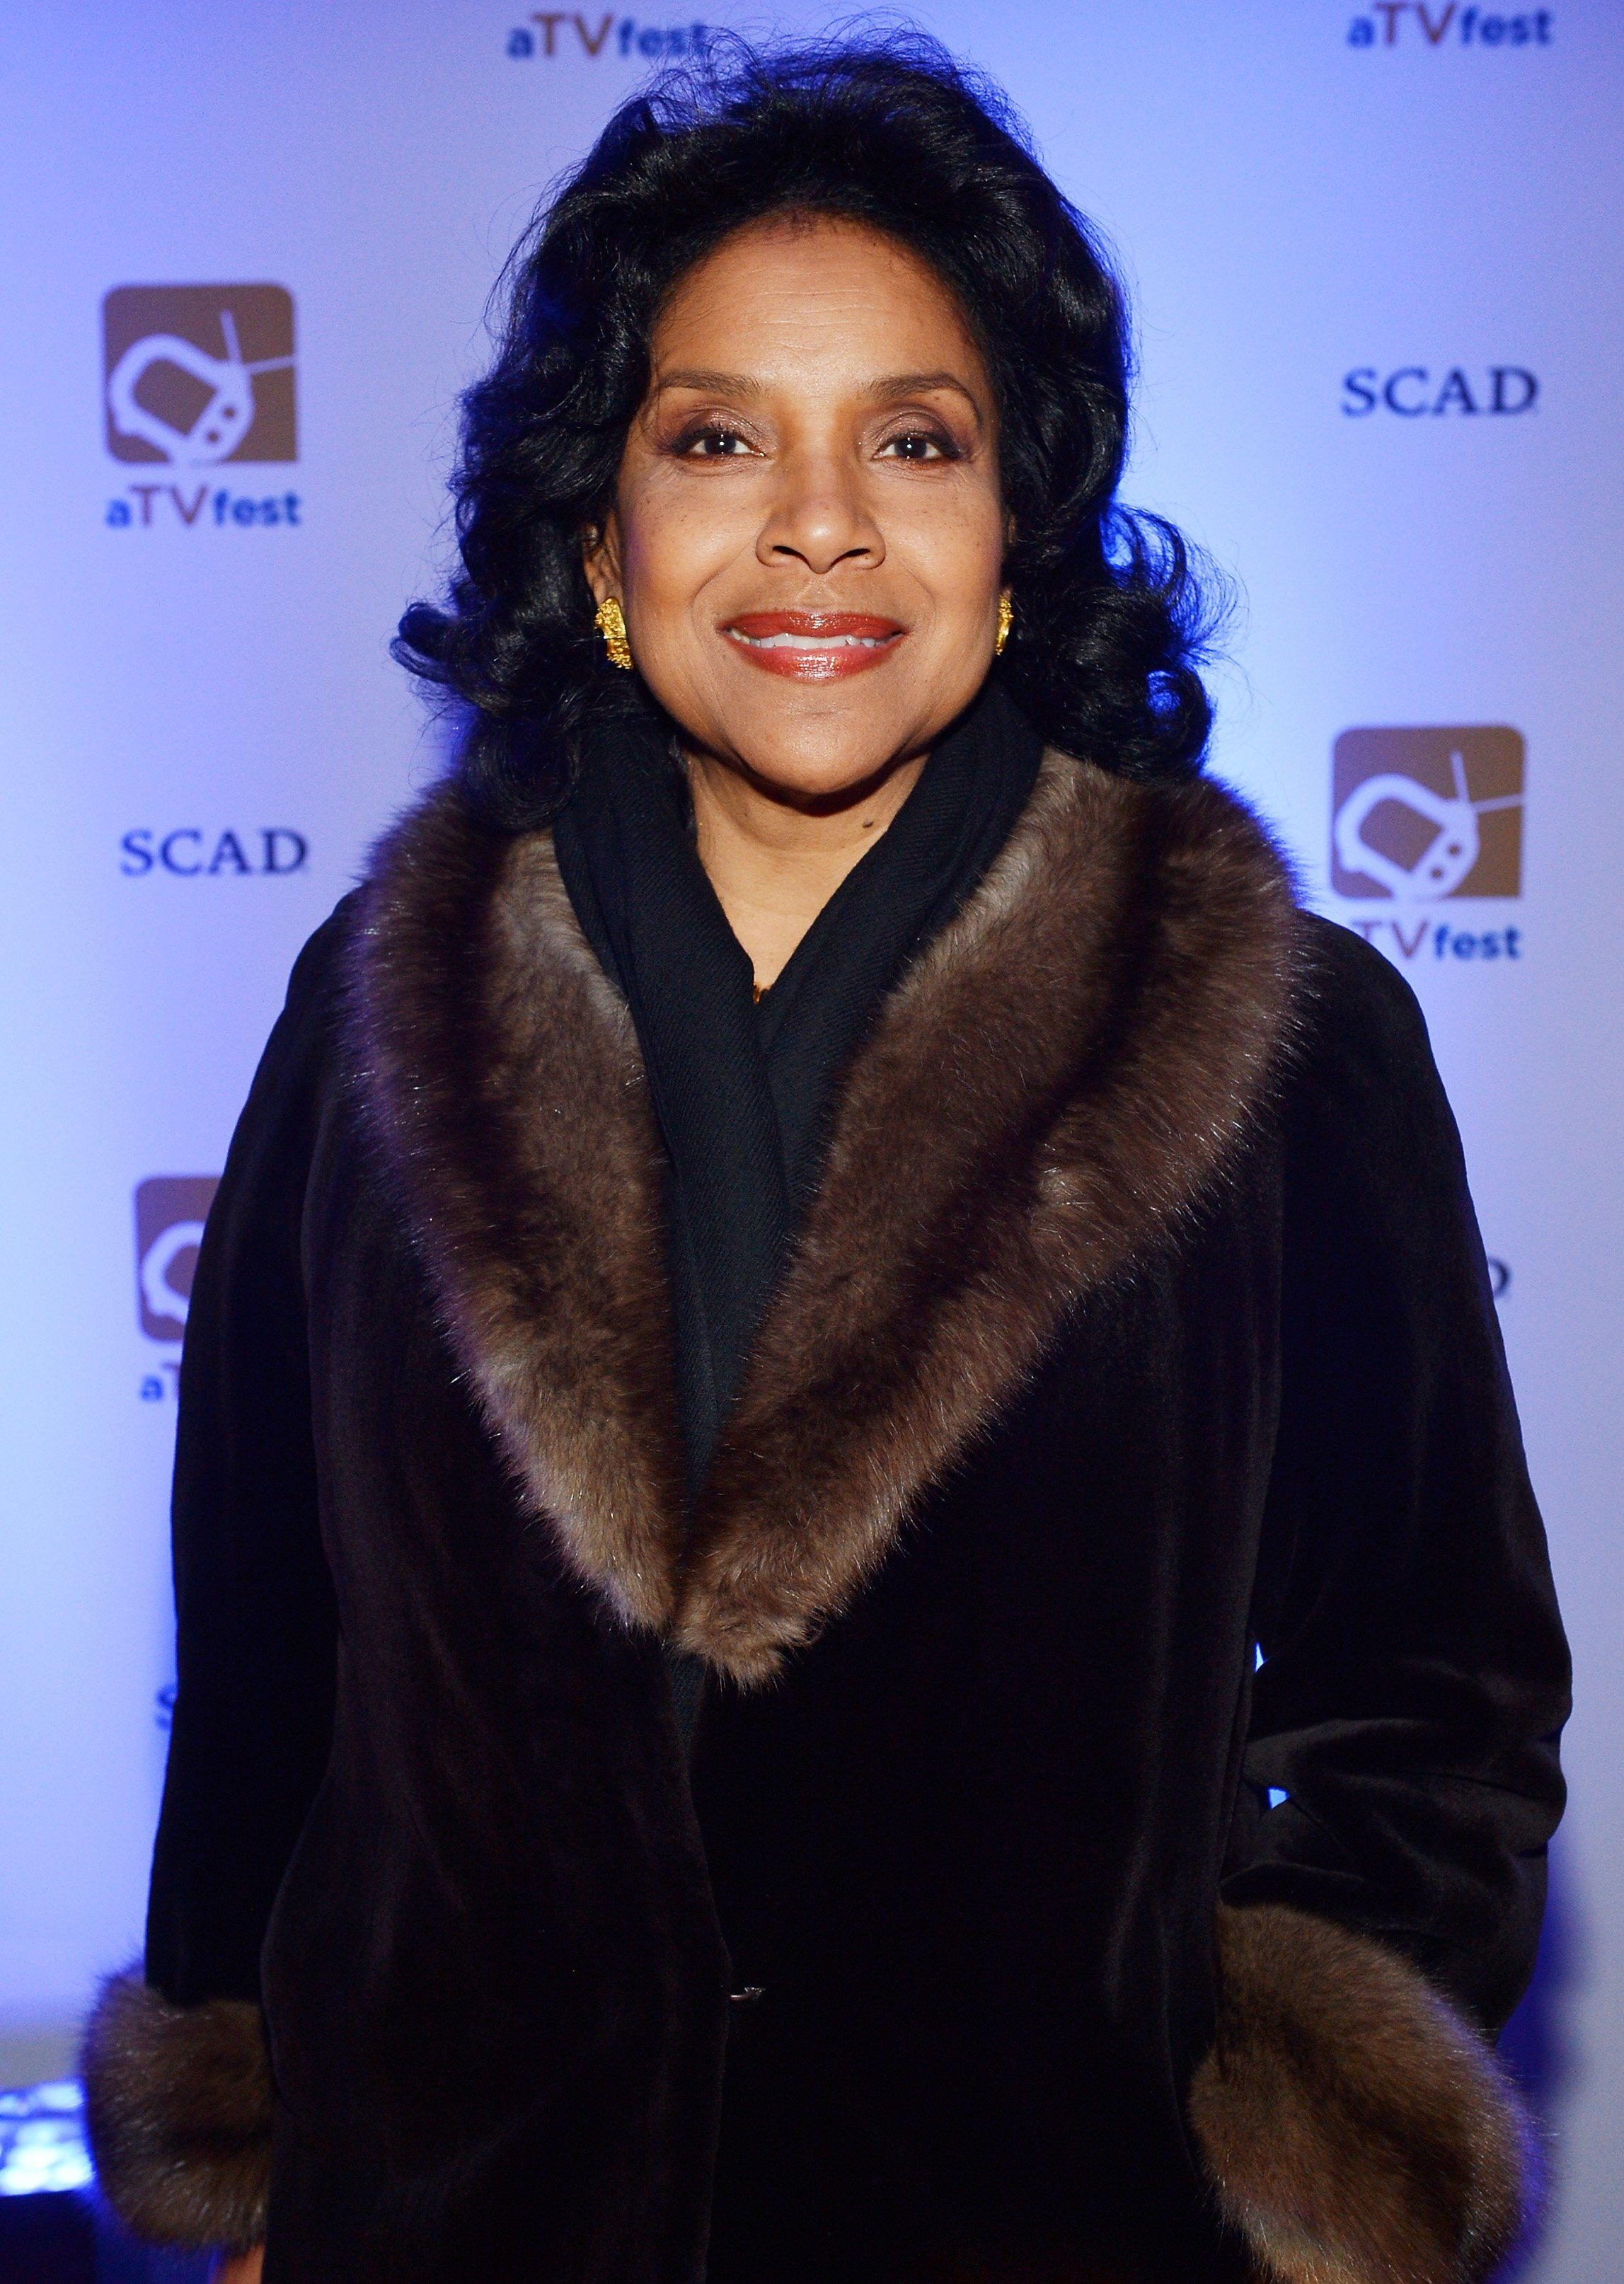 Actor Phylicia Rashad during the Inaugural aTVfest presented by (SCAD) Savannah College on February 16, 2013 | Photo: Getty Images